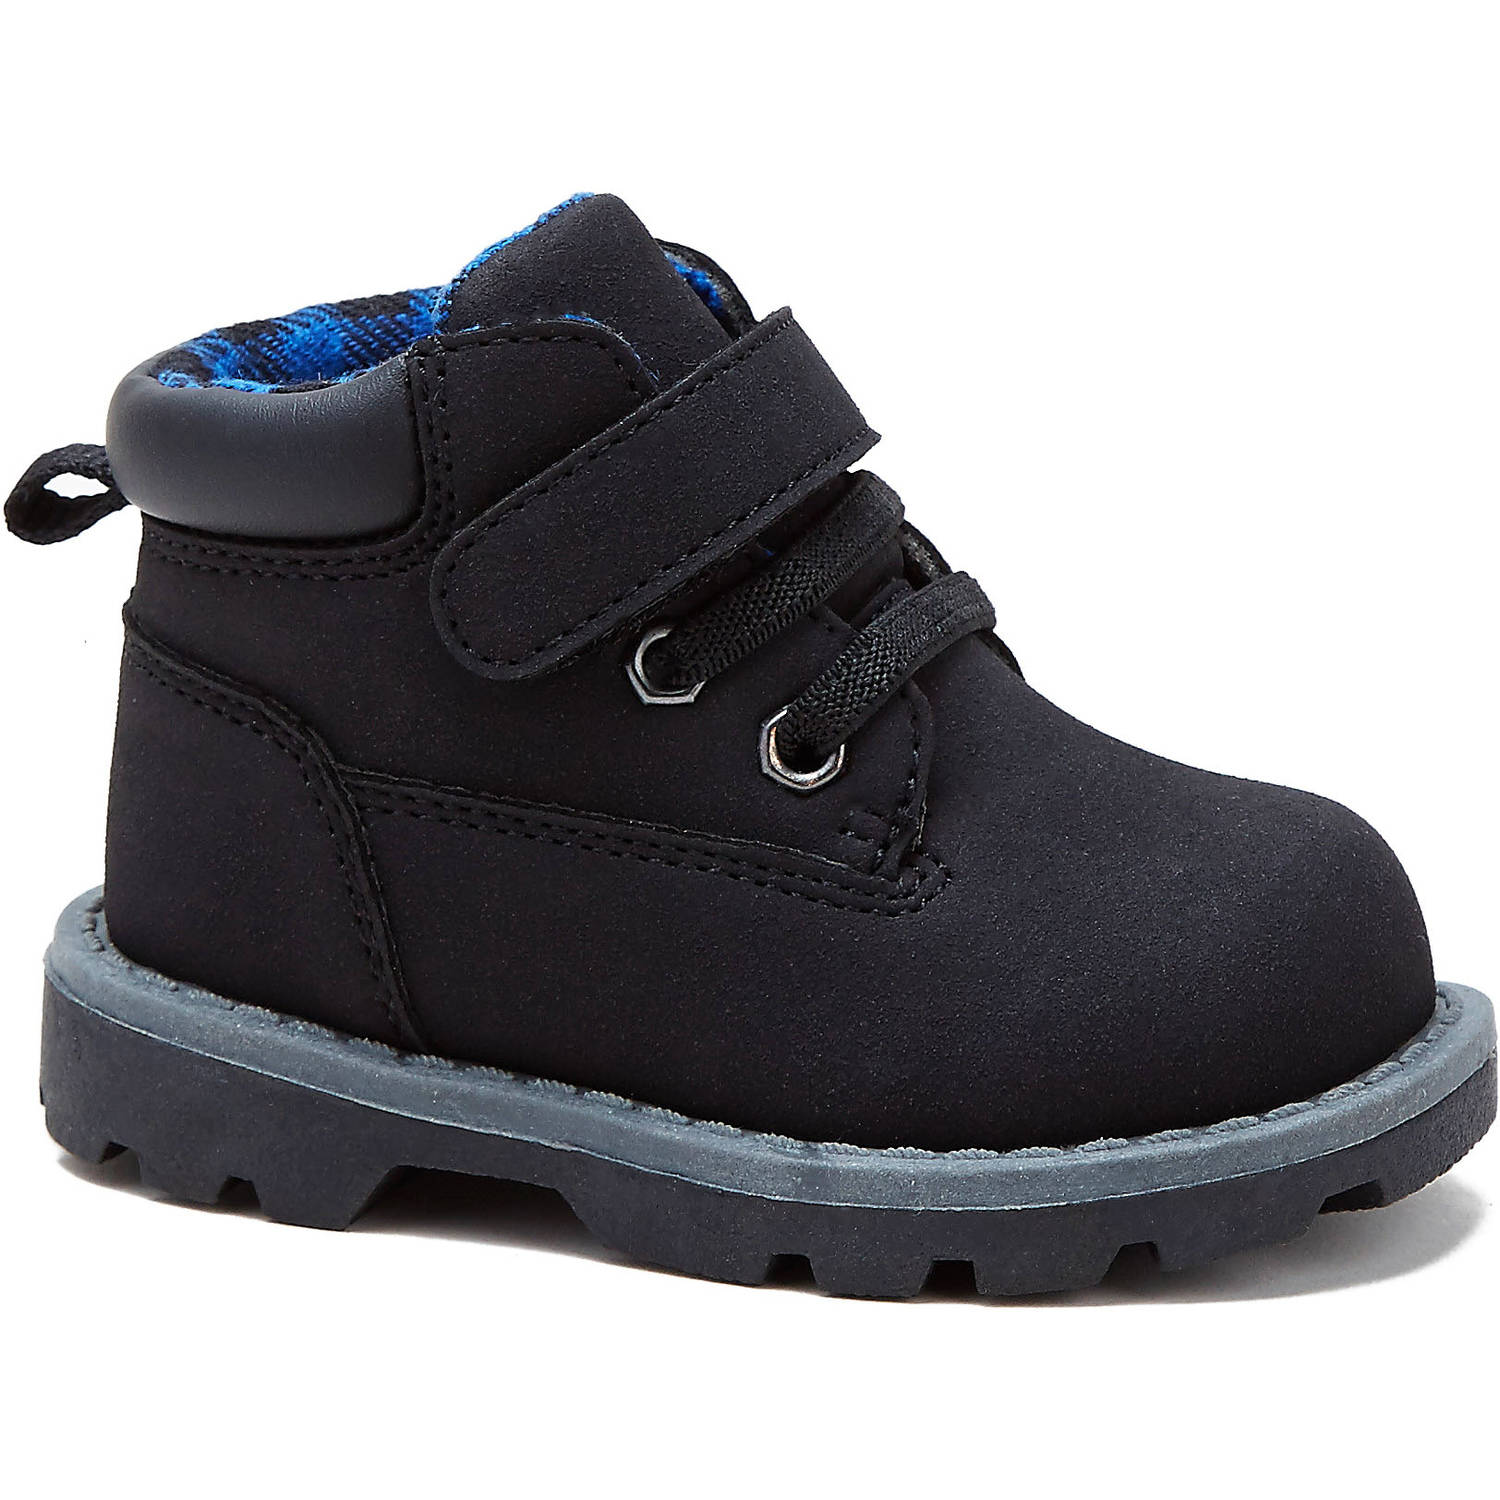 Garanimals Infant Boys Work Boot